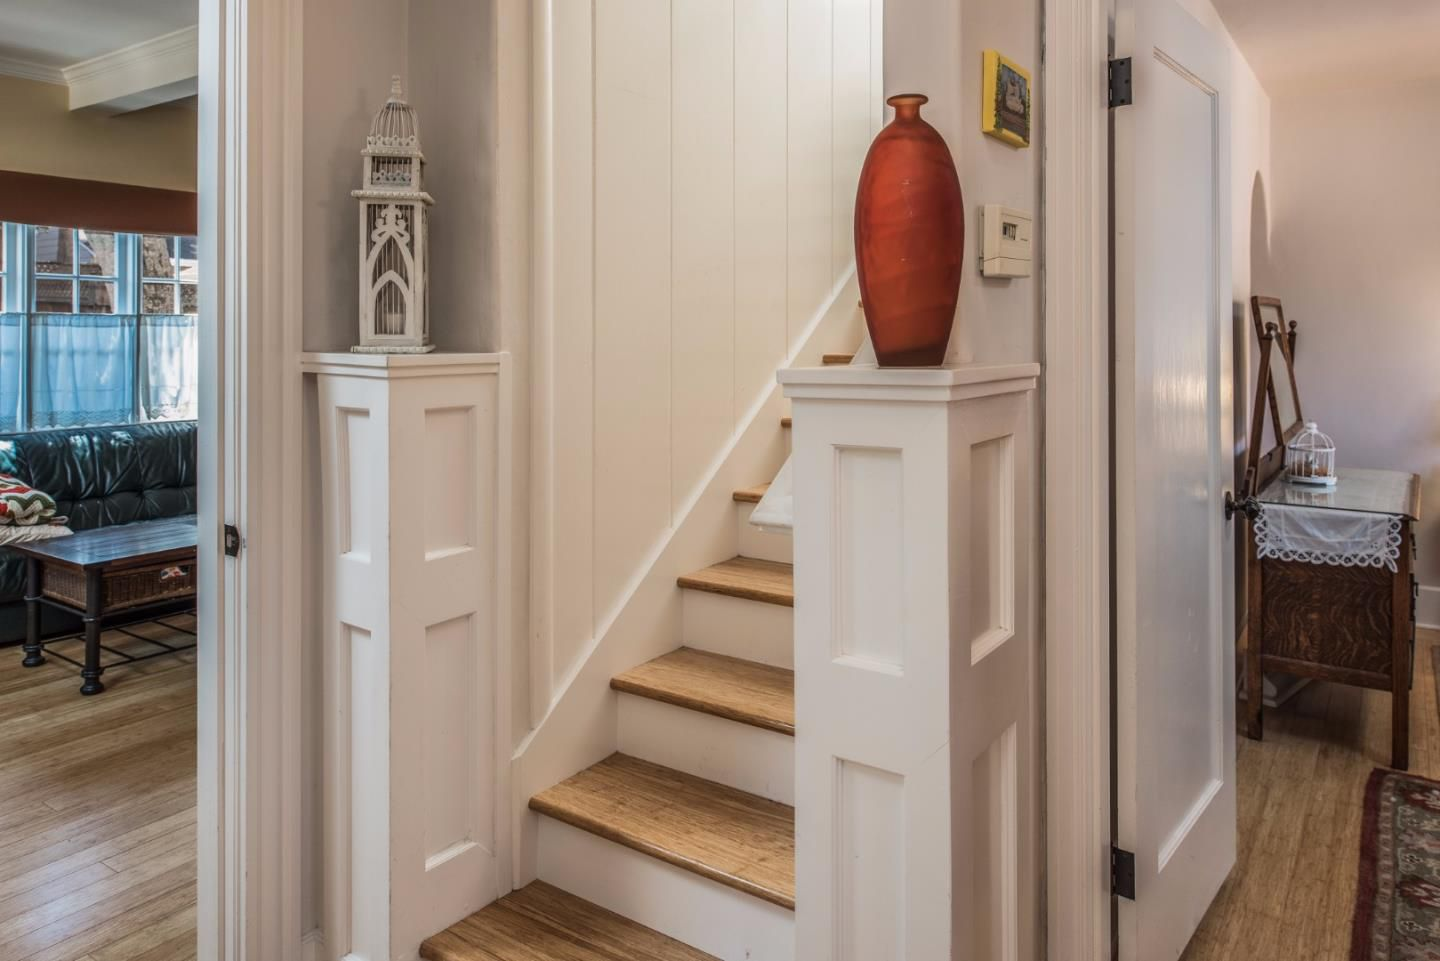 950 14th St, Pacific Grove, CA for sale in Candy Cane Lane neighborhood - cottage style stairway